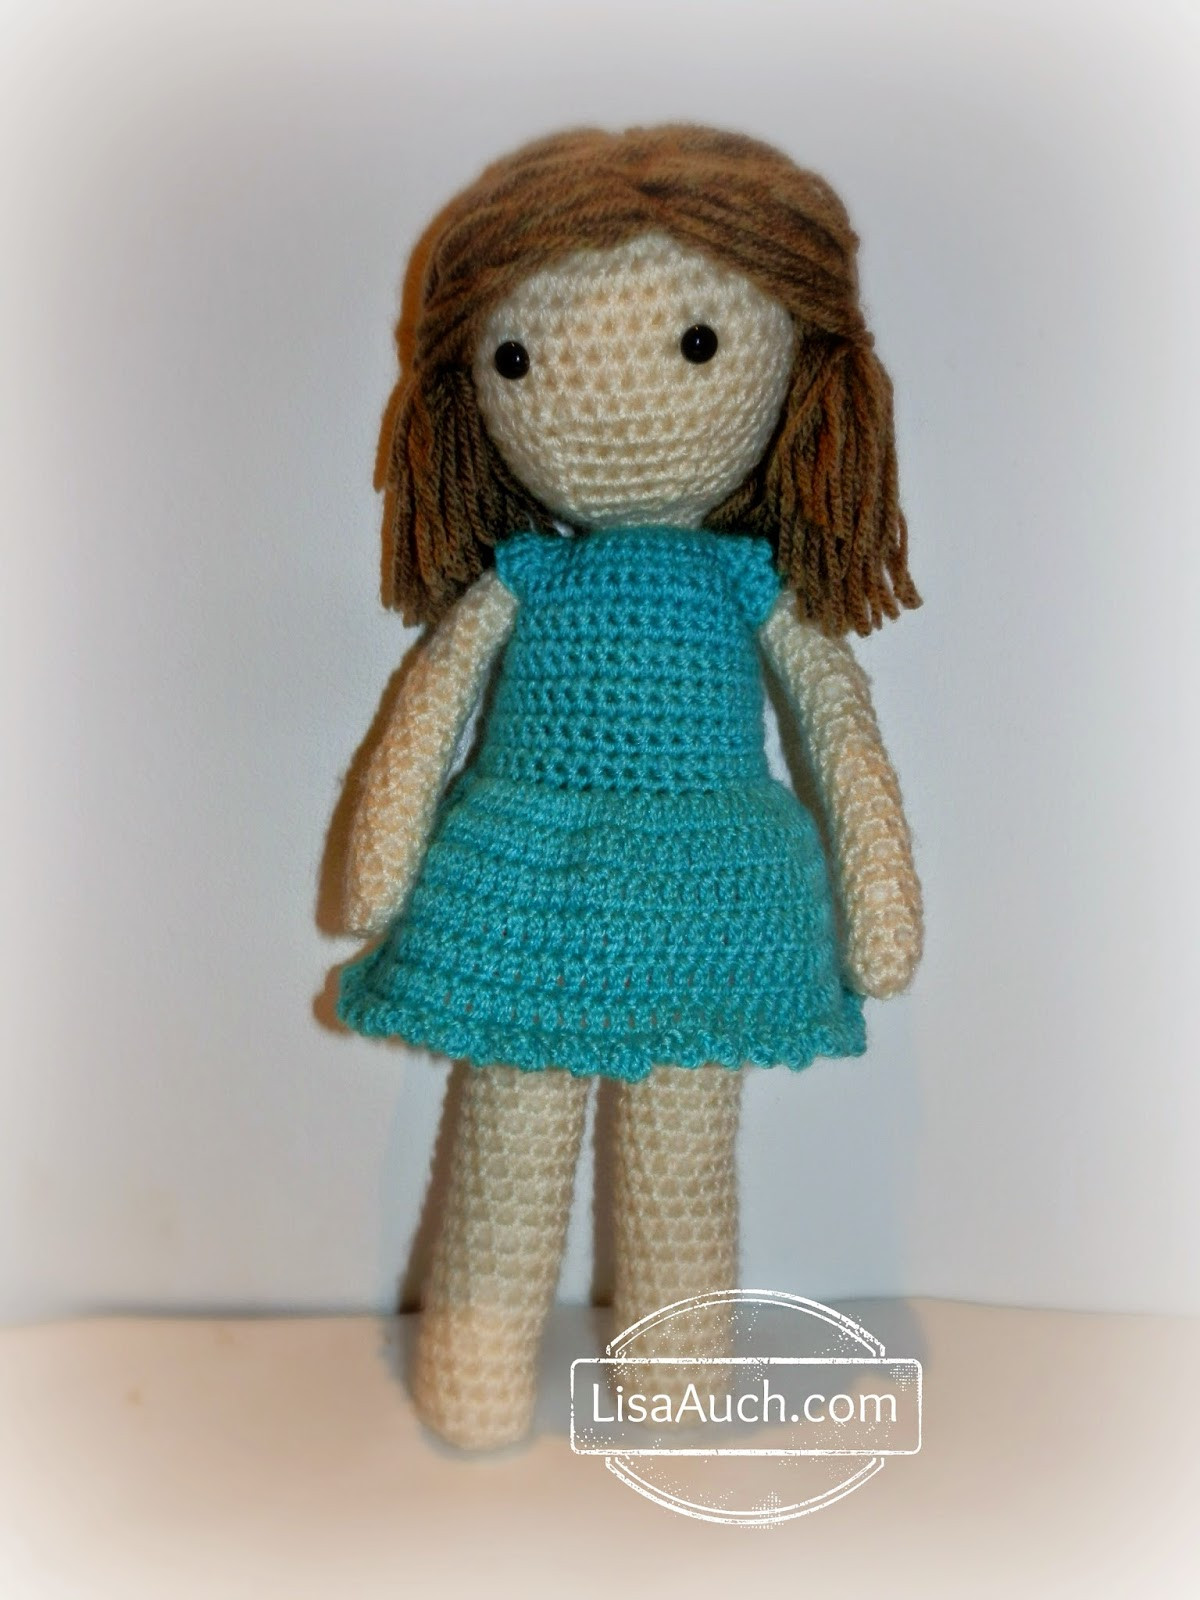 Awesome Free Crochet Patterns and Designs by Lisaauch In the Blue Free Doll Patterns Of Unique 47 Photos Free Doll Patterns